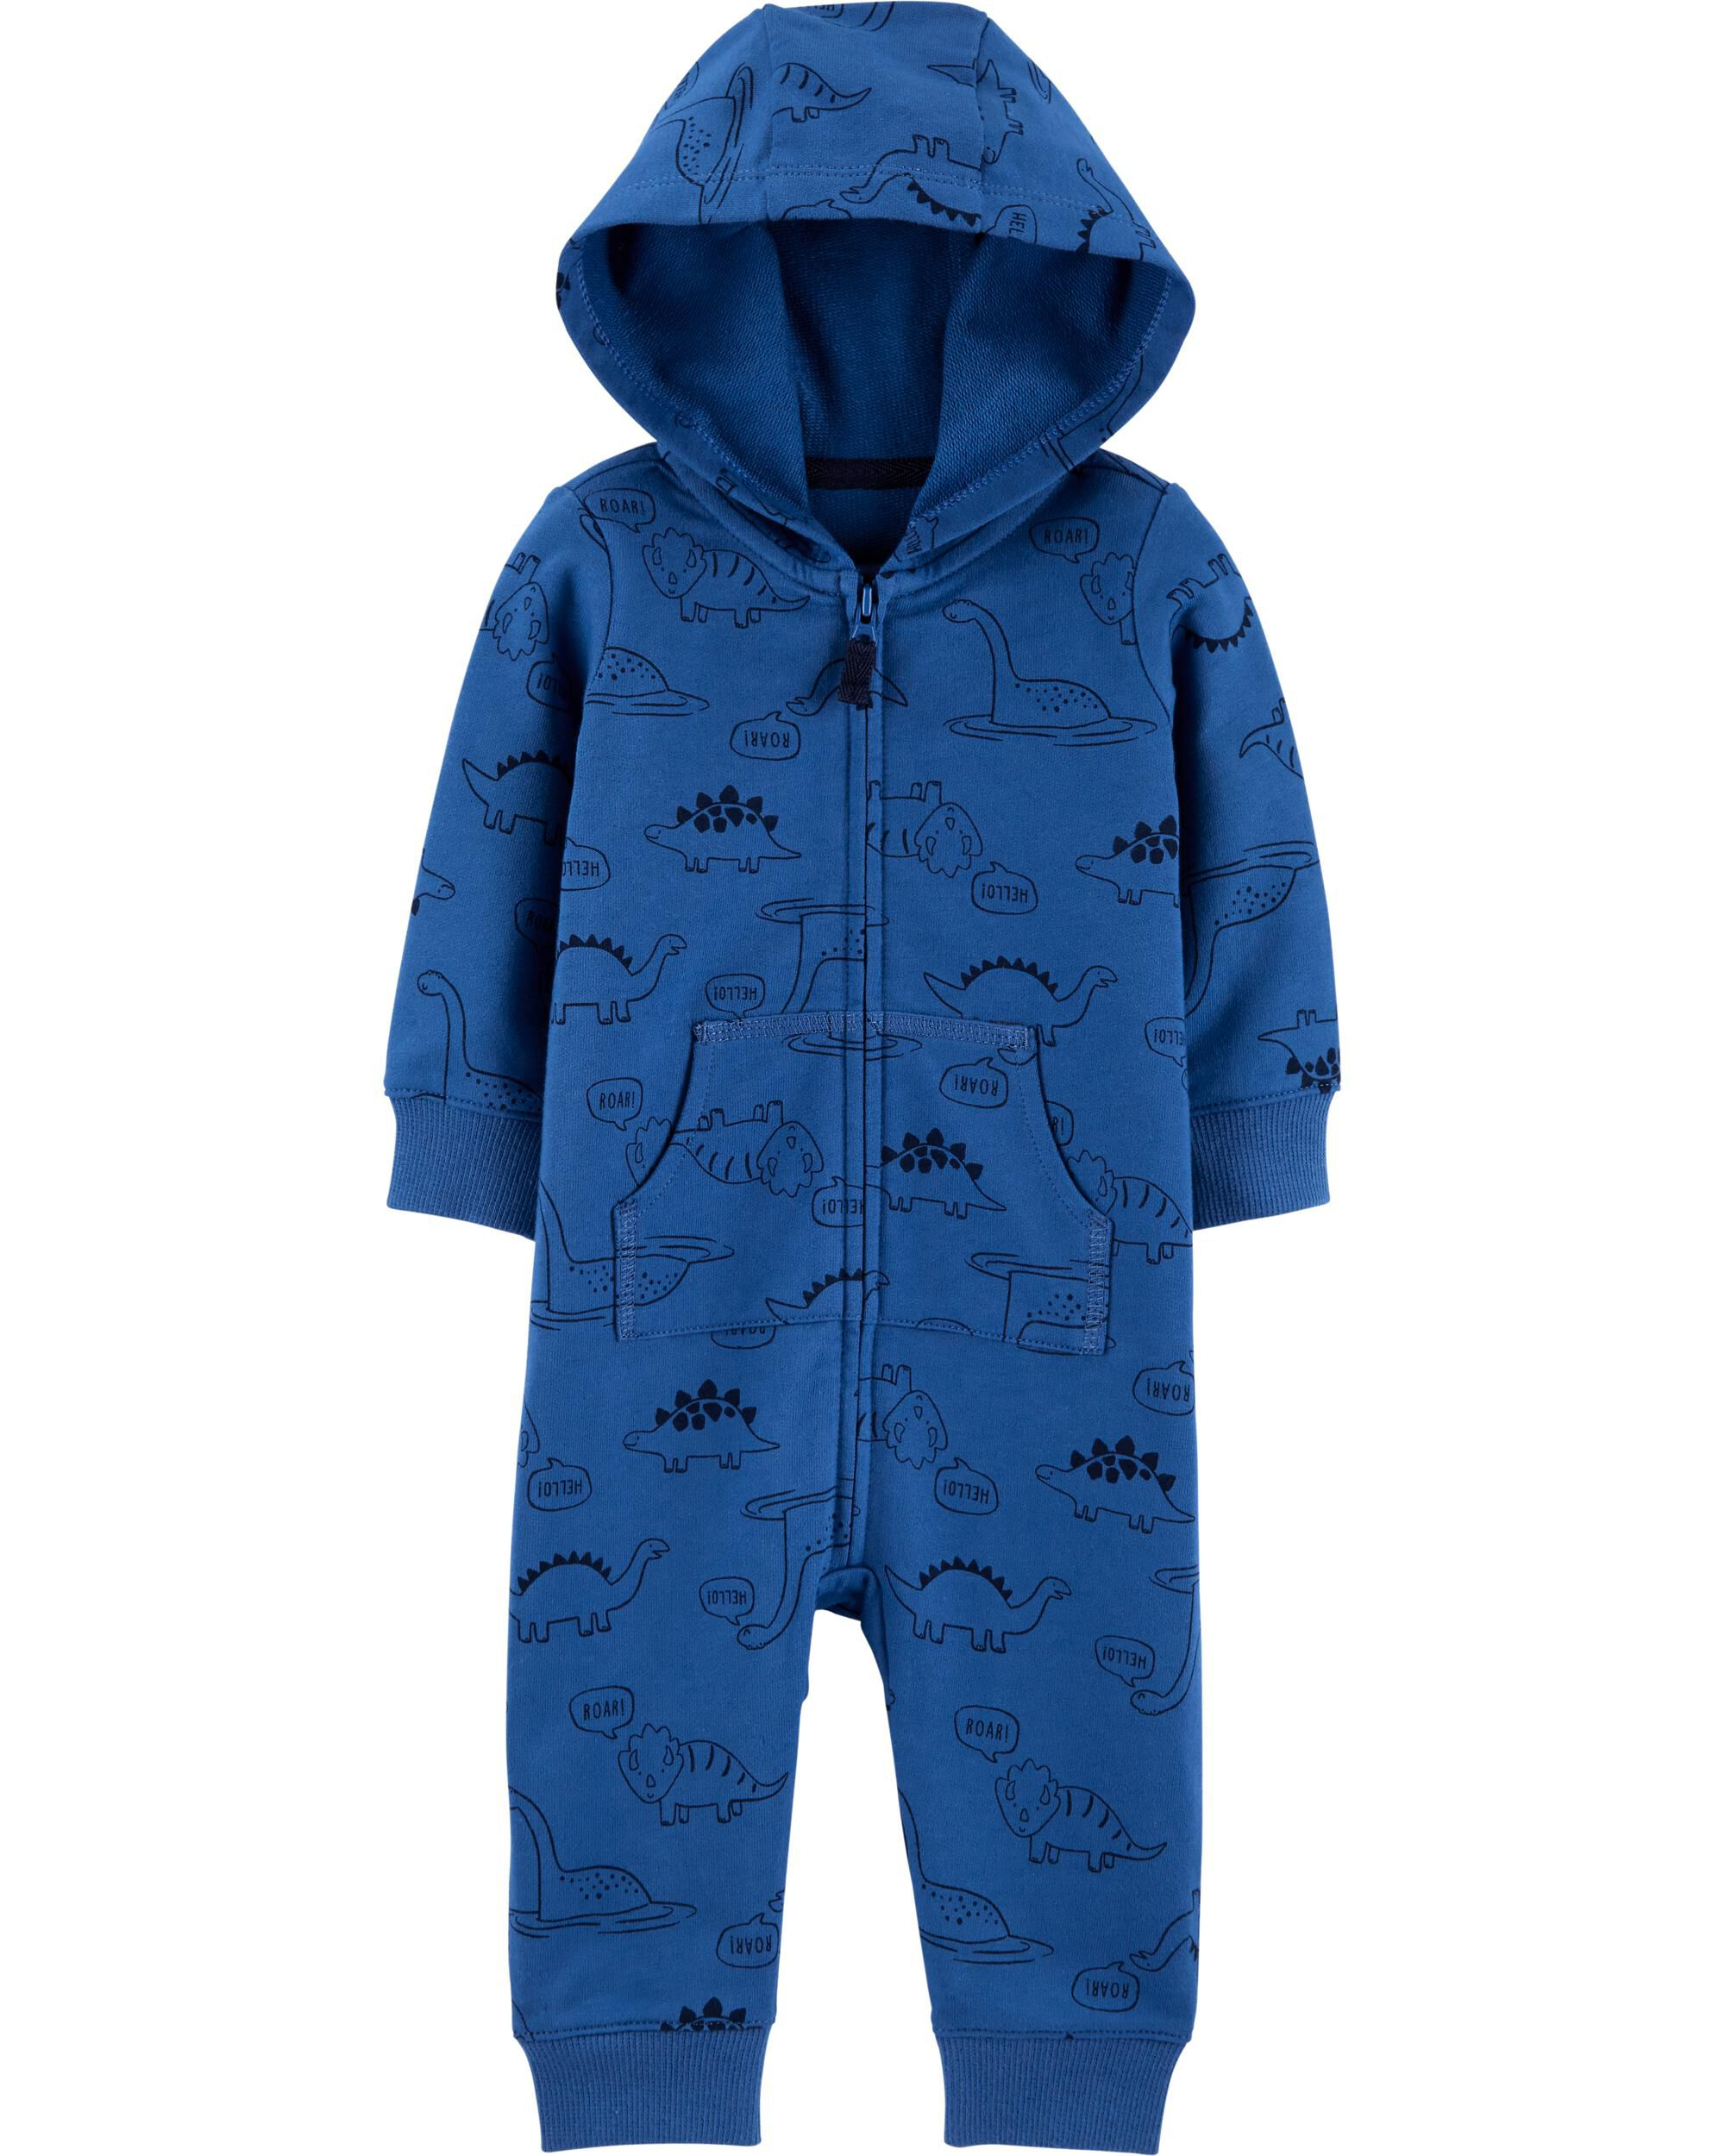 Hooded Dinosaur Jumpsuit